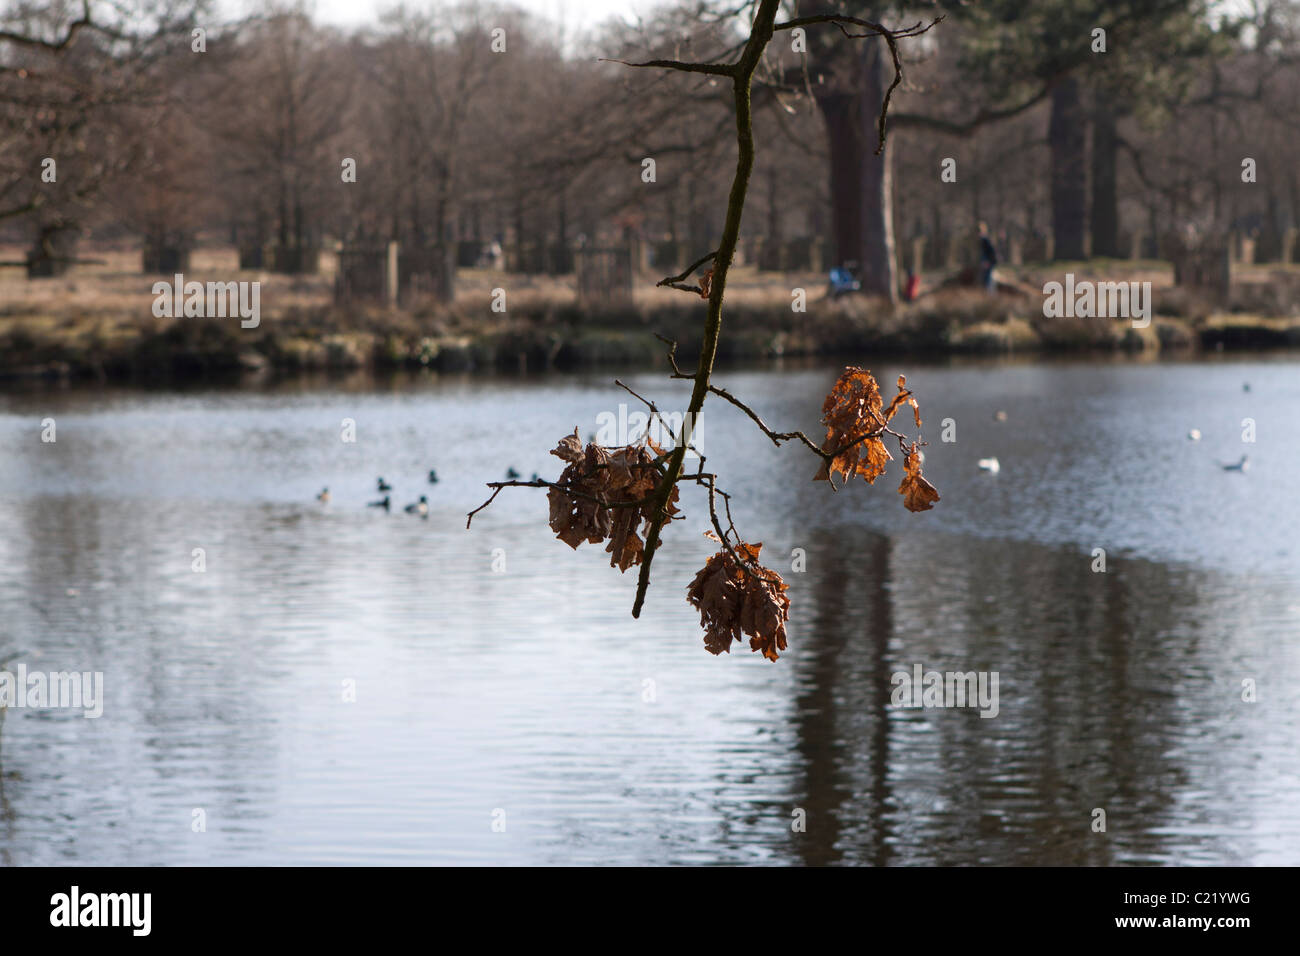 Wilting Leaves at Dunham Massey in Cheshire, England. - Stock Image